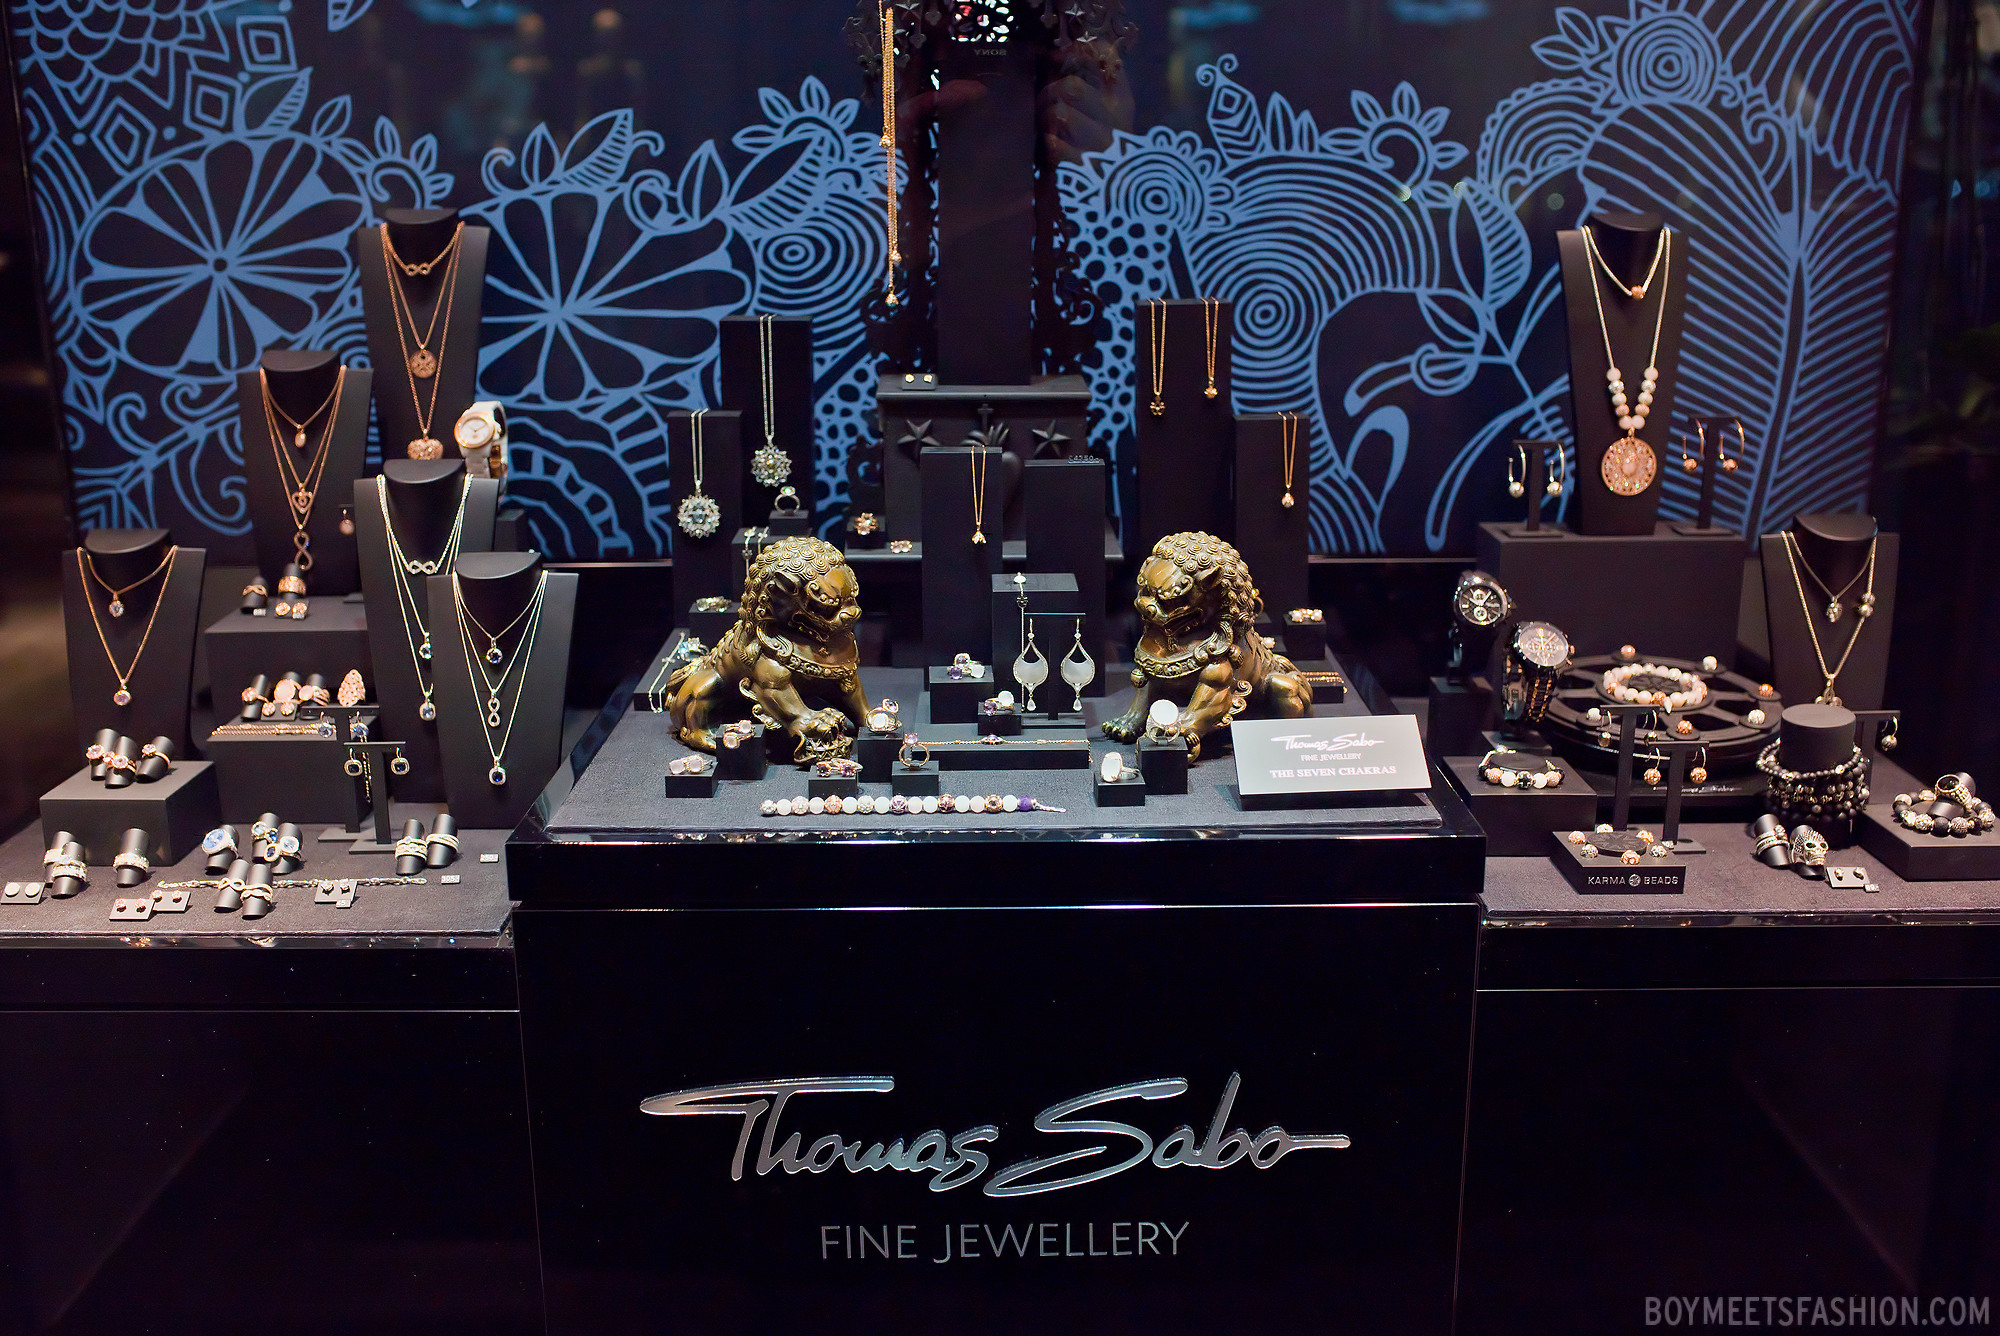 Thomas Sabo fine jewellery display at House of Fraser. Amazing setting with nature motifs drawn on the background and a wide variety of jewelry displayed.